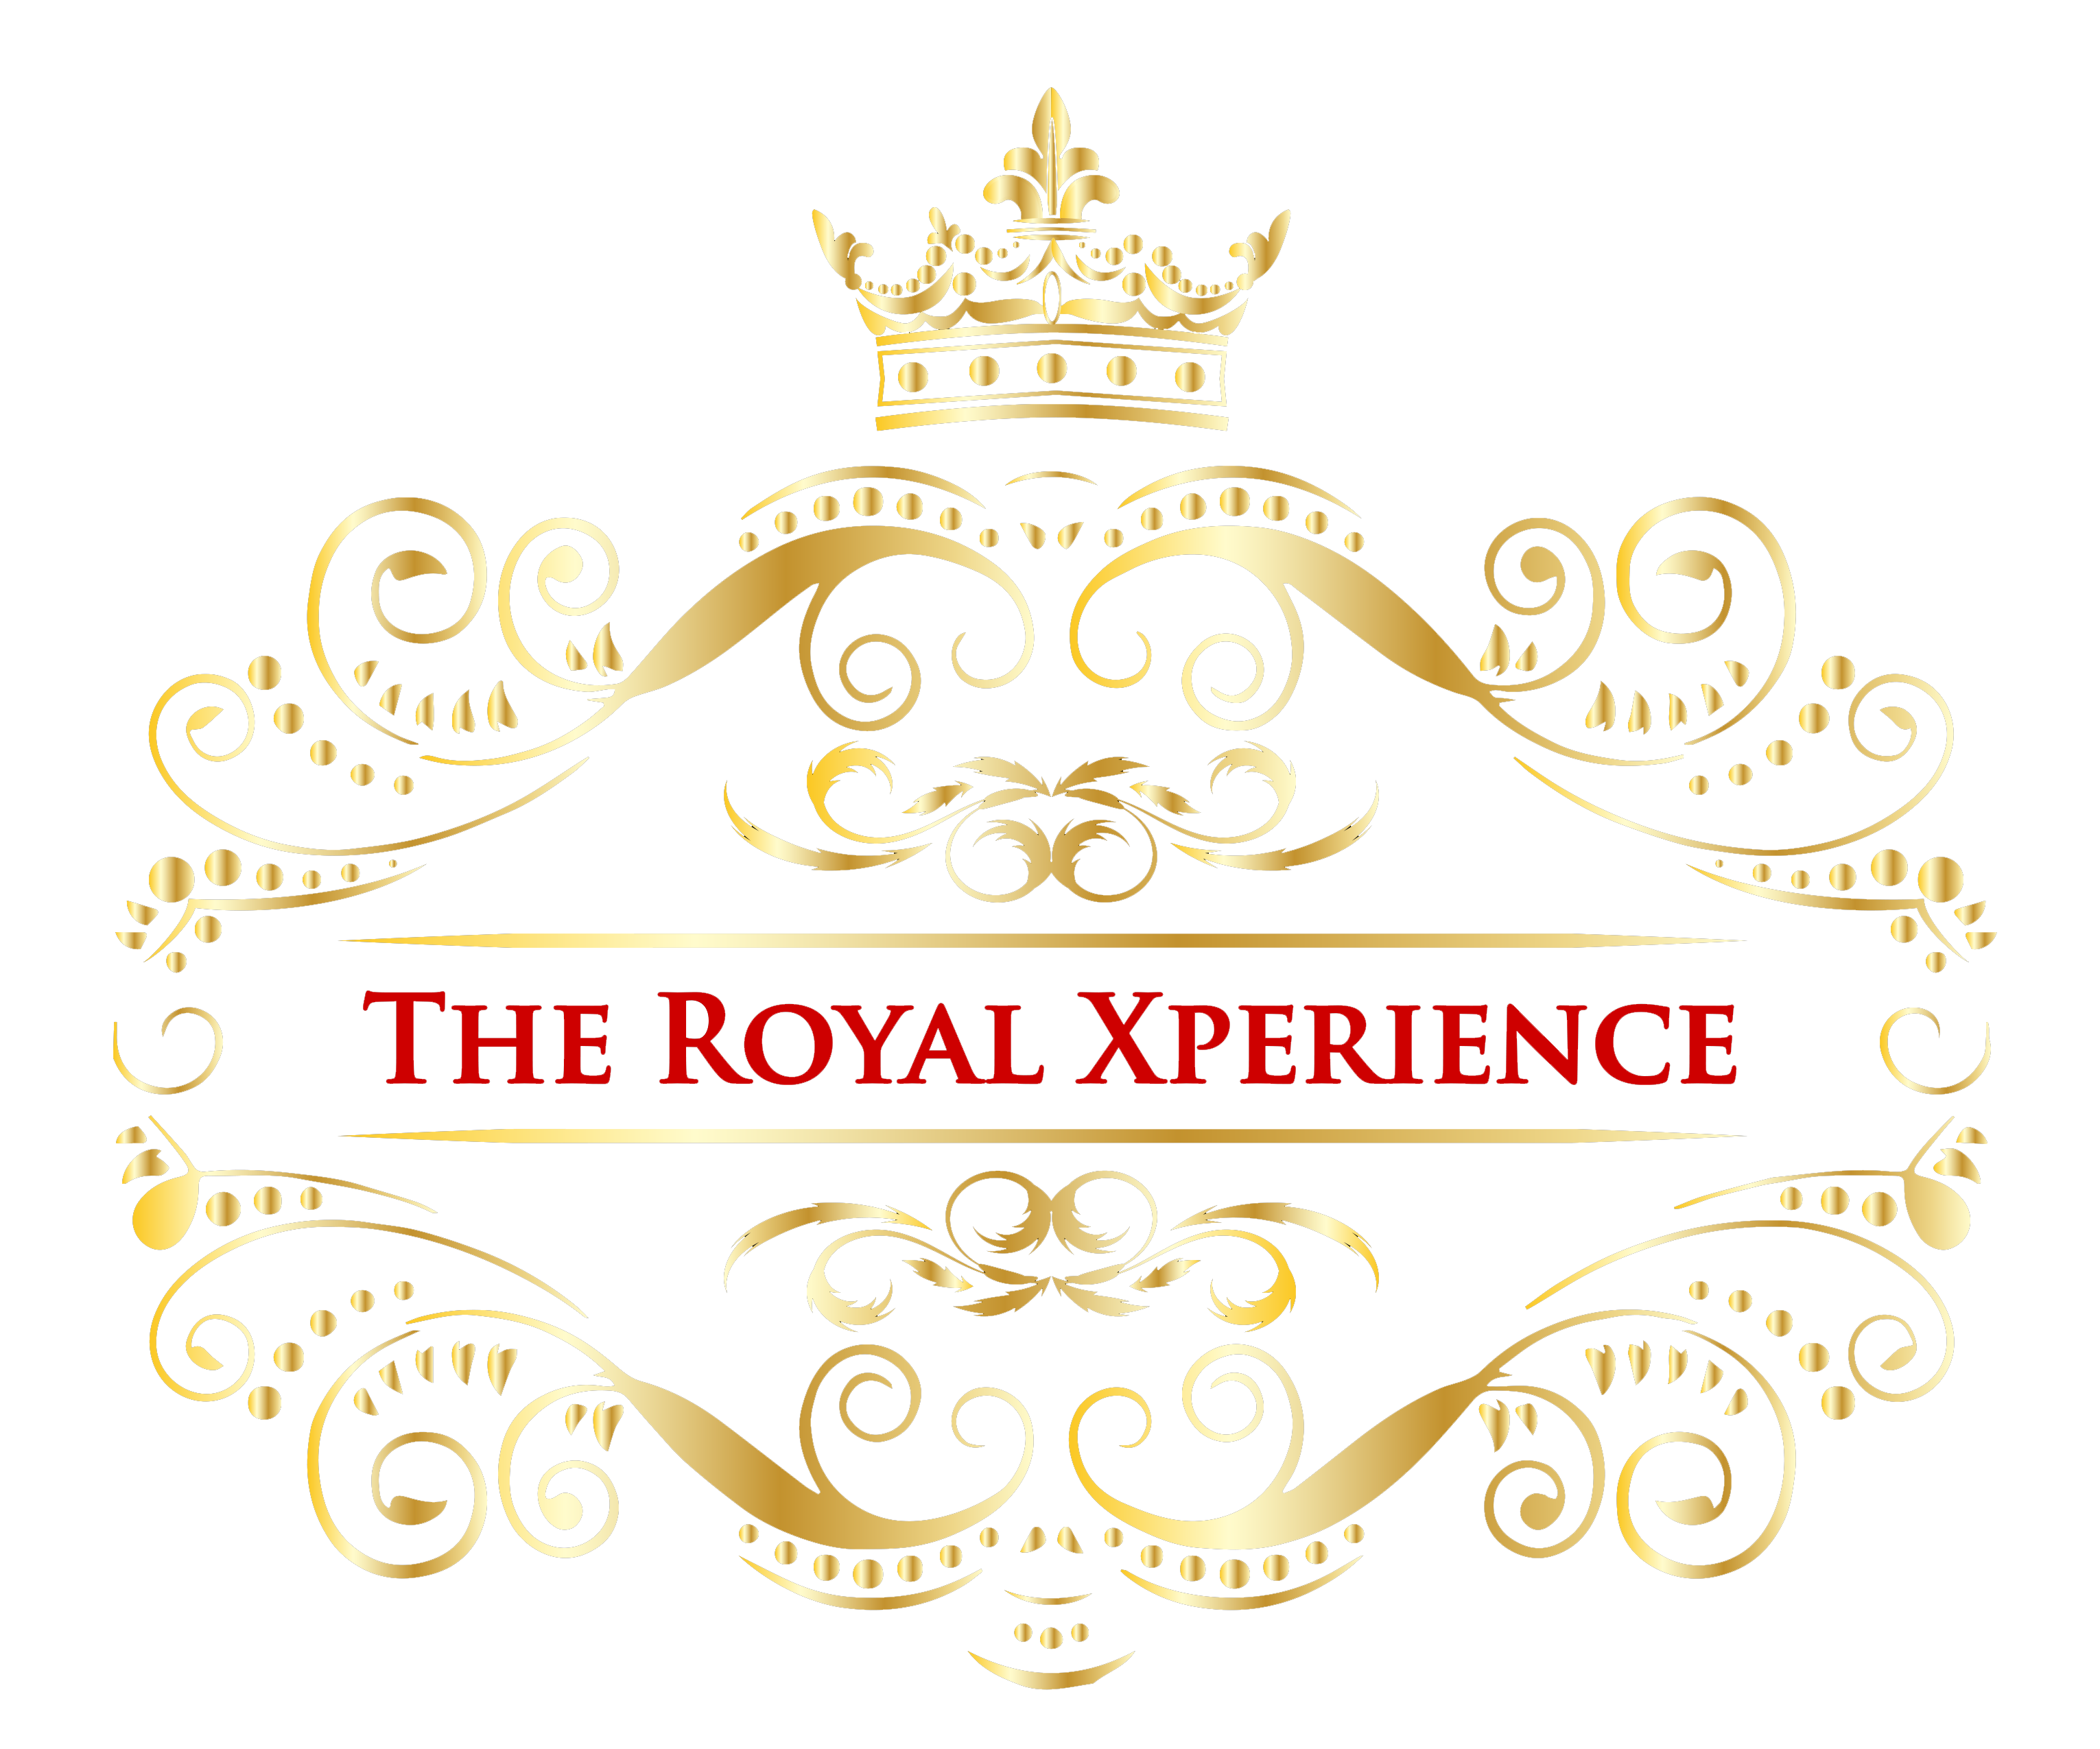 The Royal Xperience